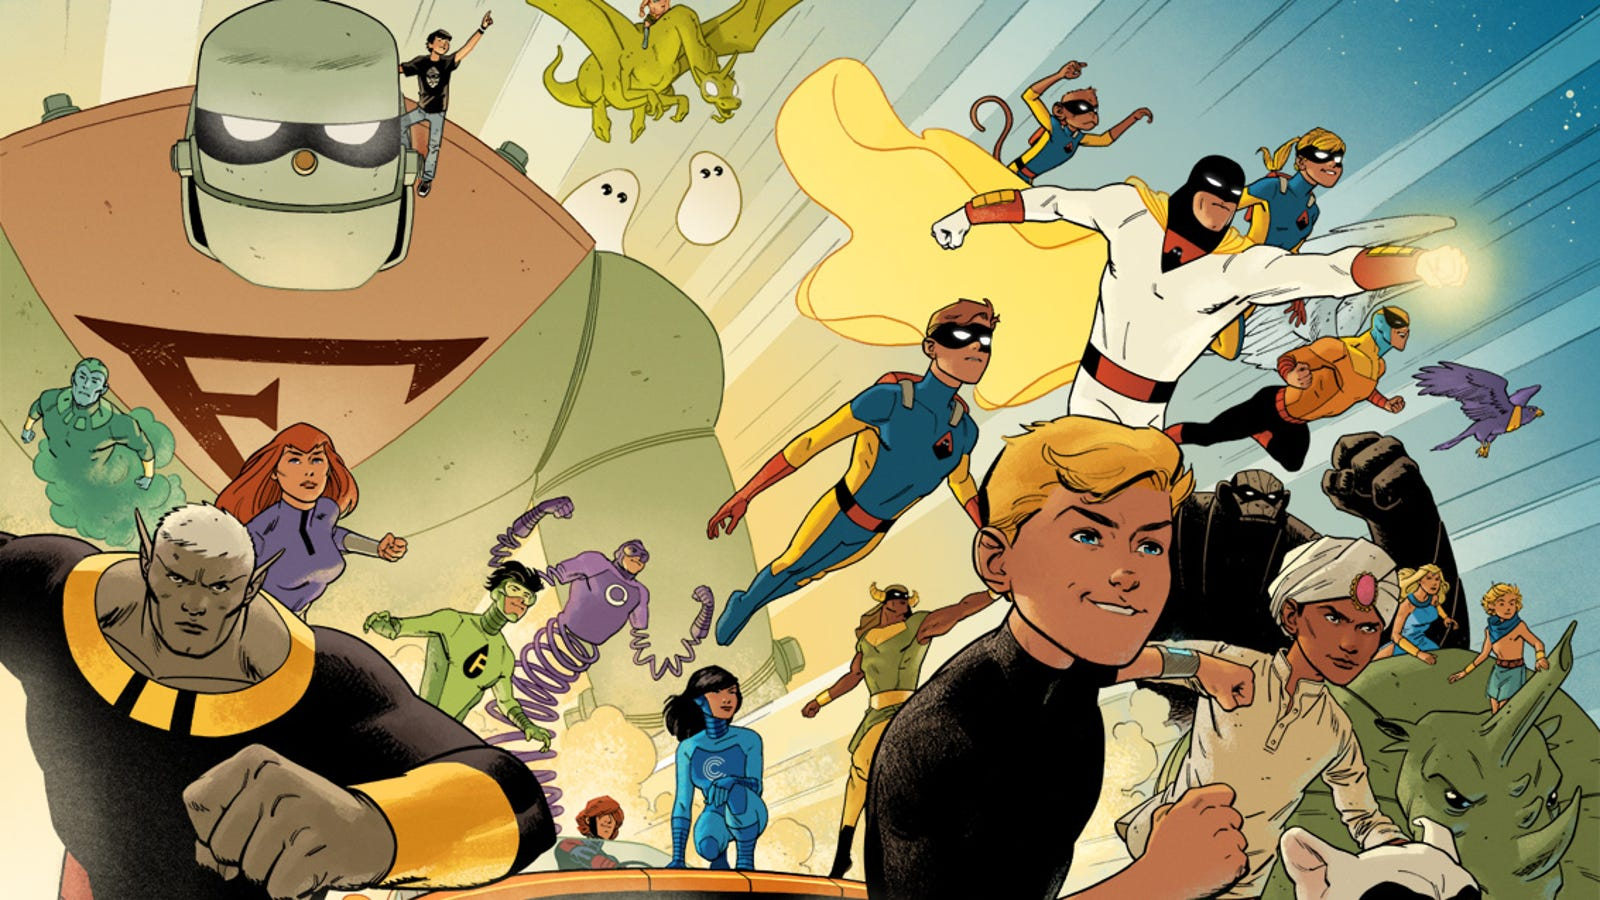 Future Quest Kicks Off the Cartoon Crossover My Childhood Cried Out For